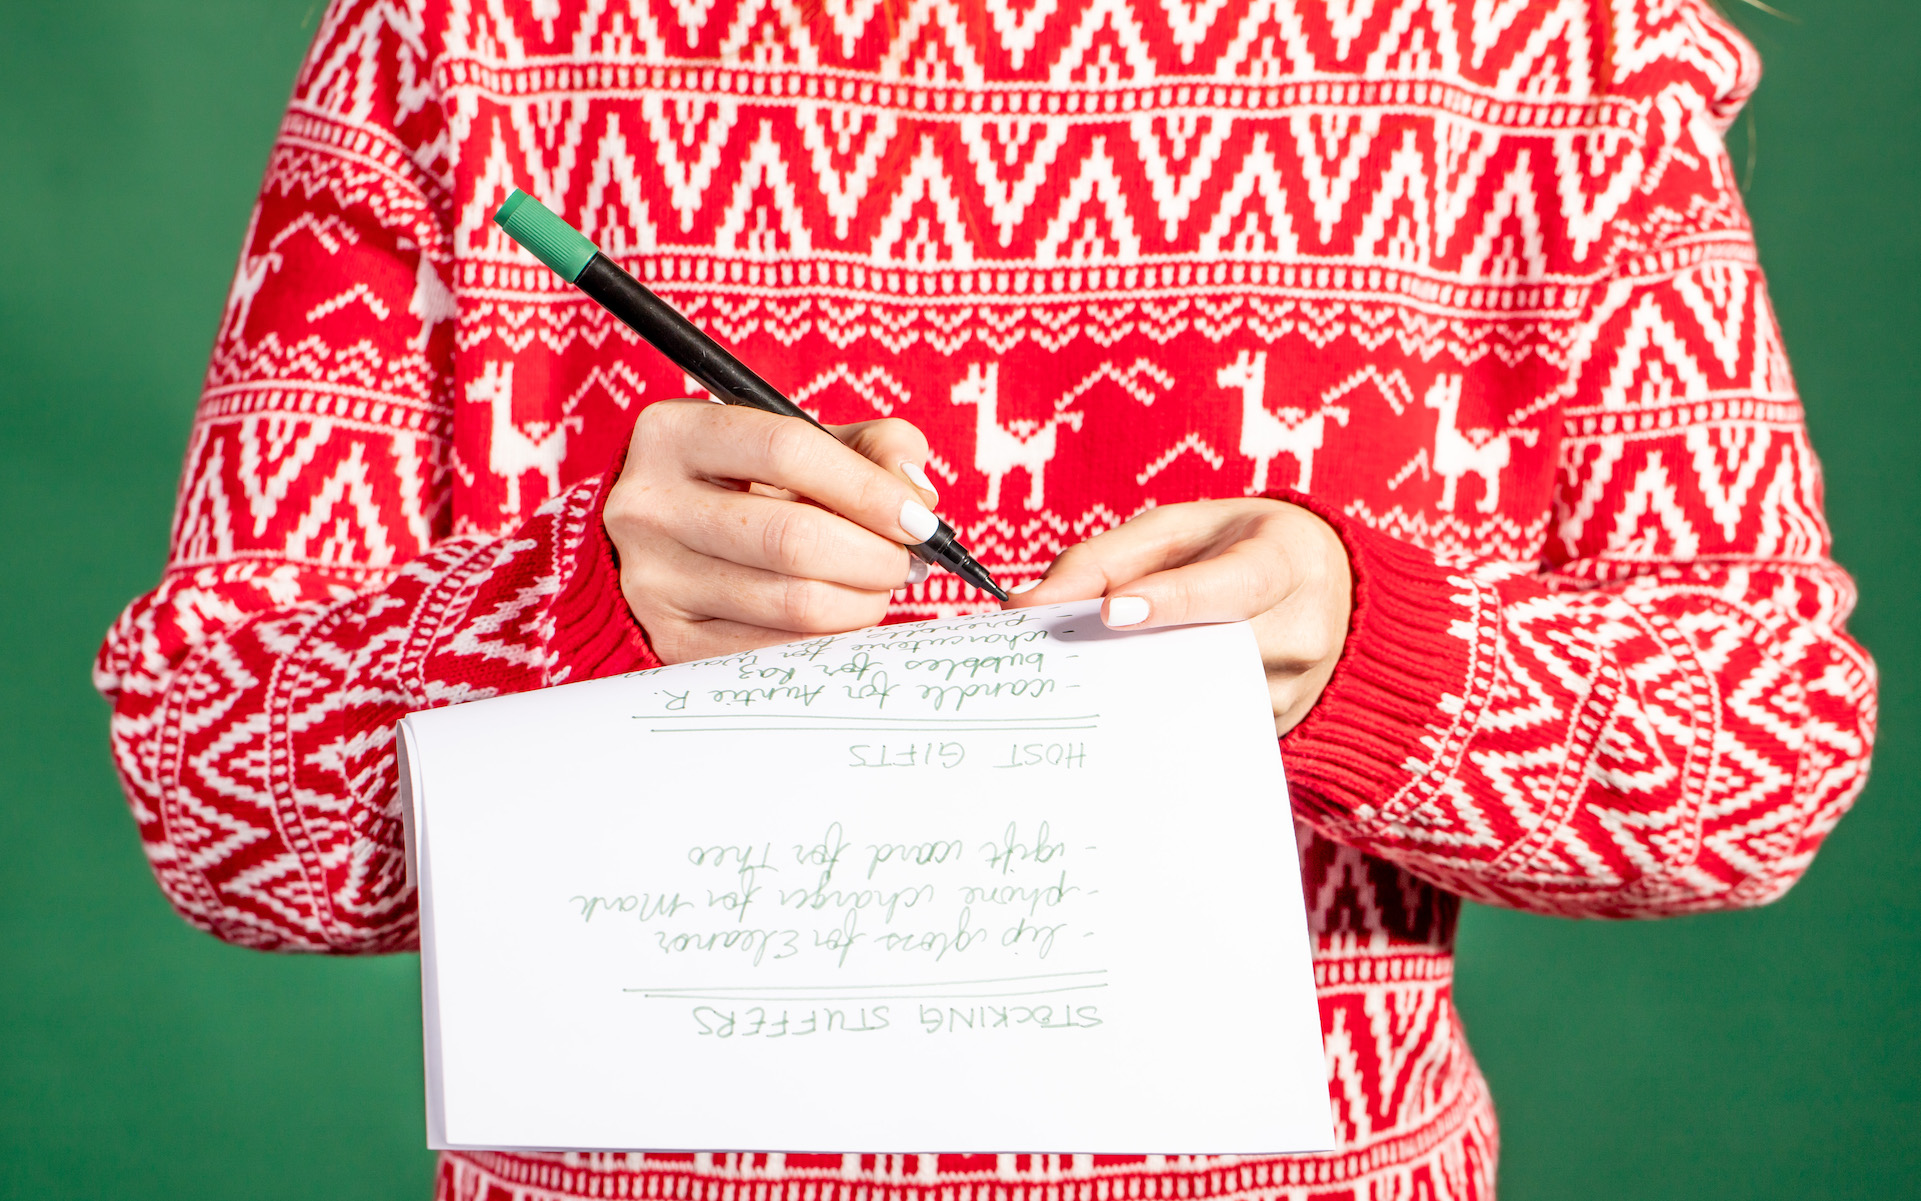 Cannabis holiday etiquette; person in Christmas sweater writing gift list